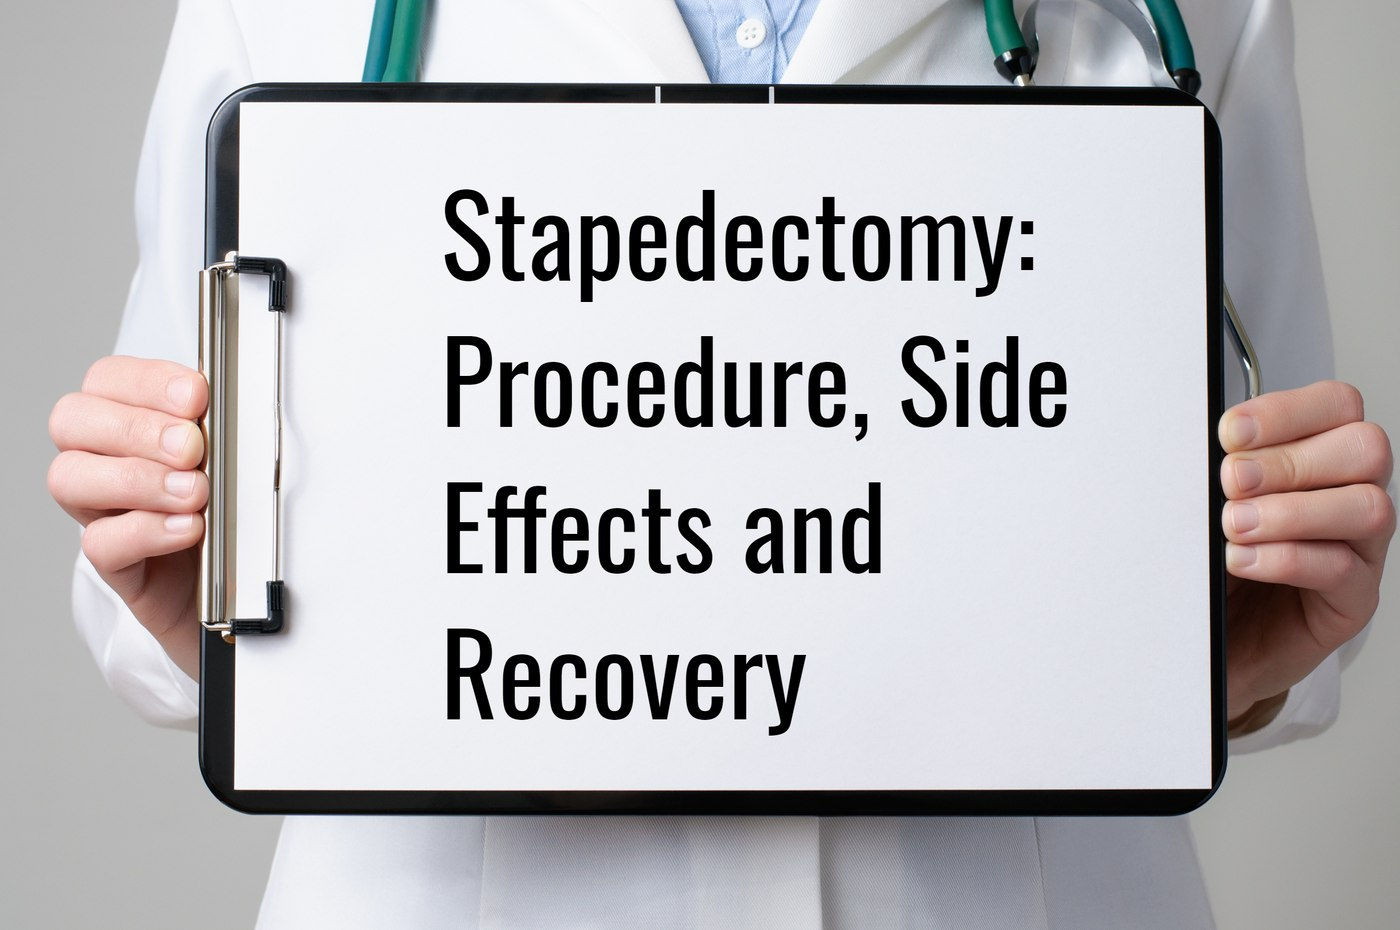 Stapedectomy procedure side effects and recovery houston ent